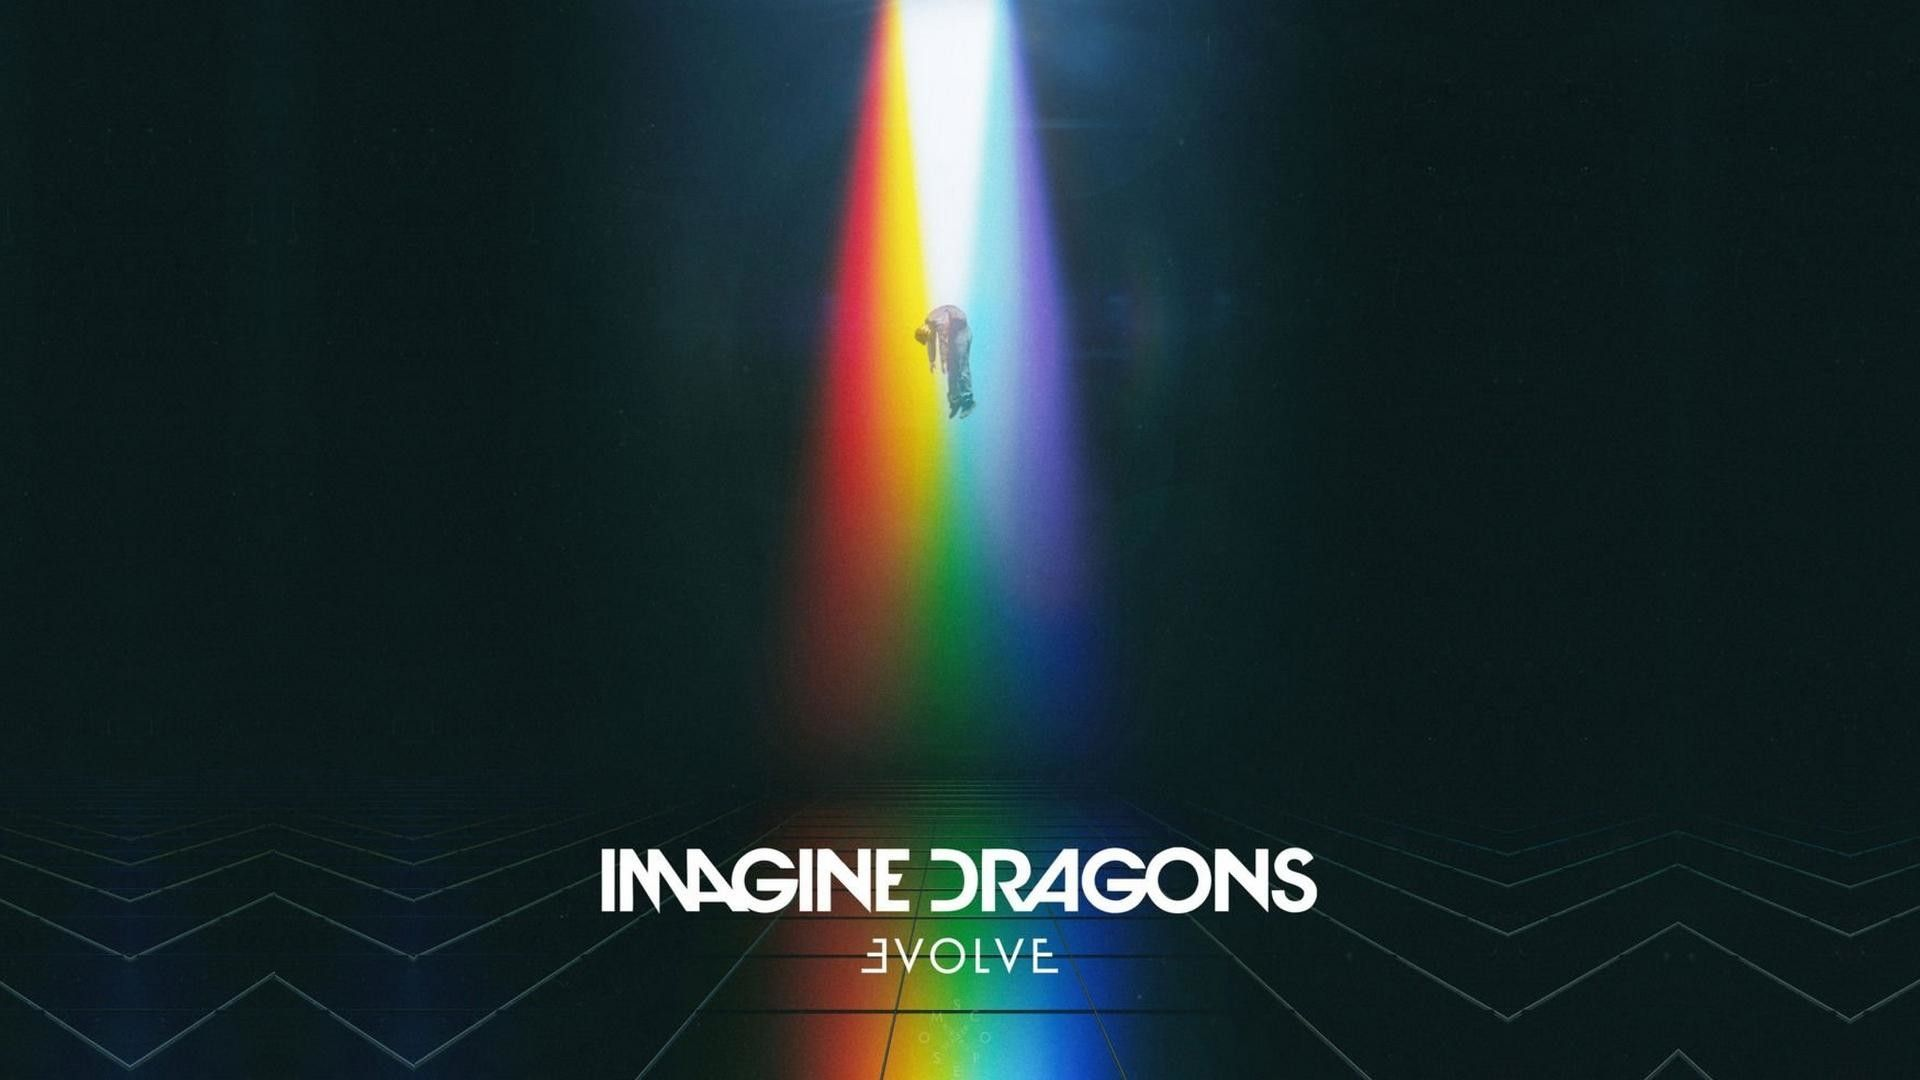 Imagine Dragons Wallpapers Top Free Imagine Dragons Backgrounds